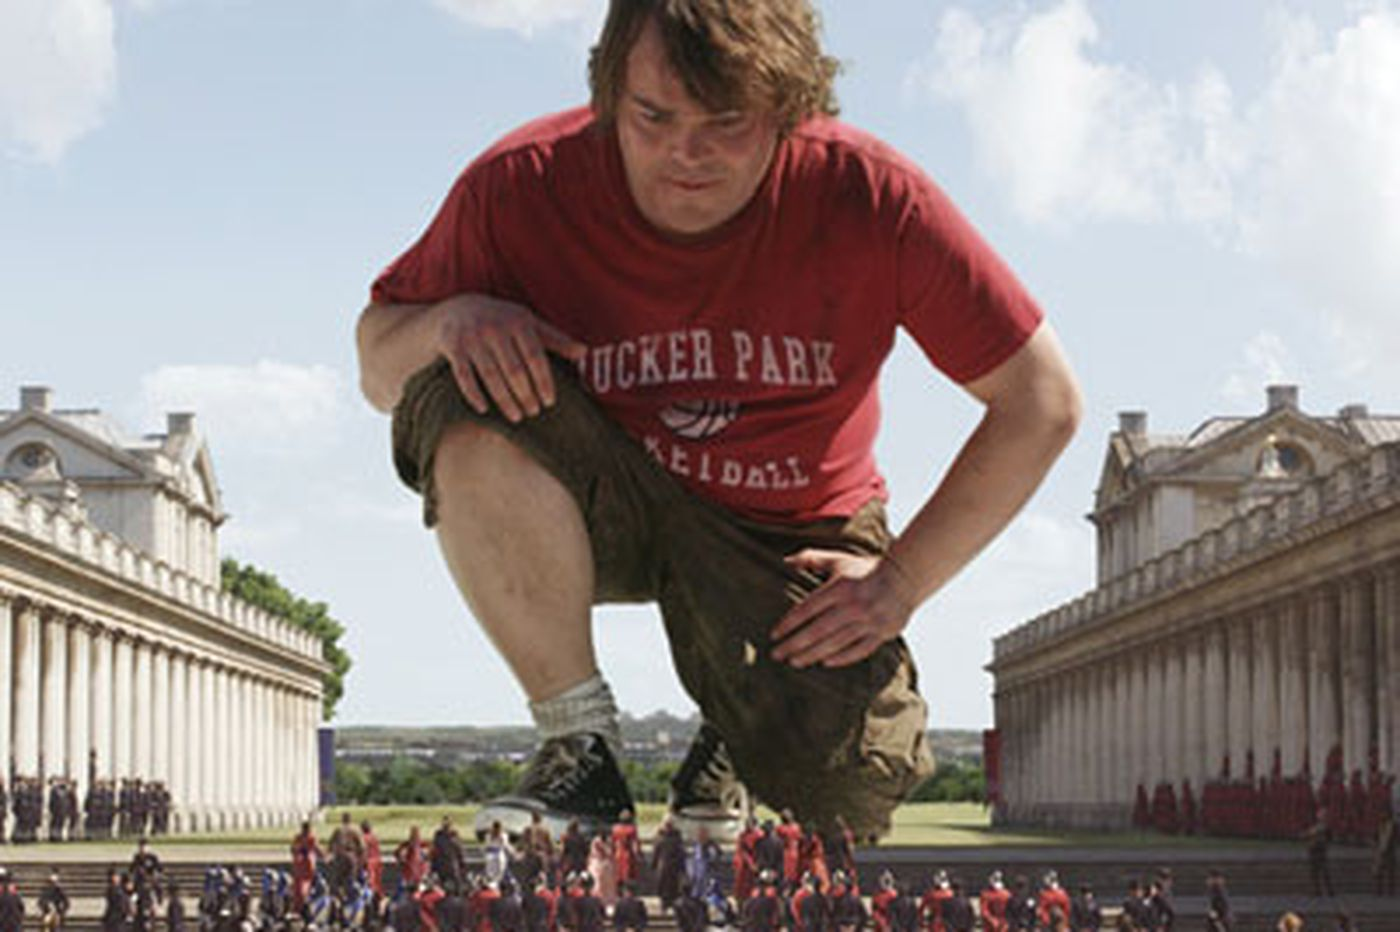 'Gulliver's Travels' goes absolutely nowhere